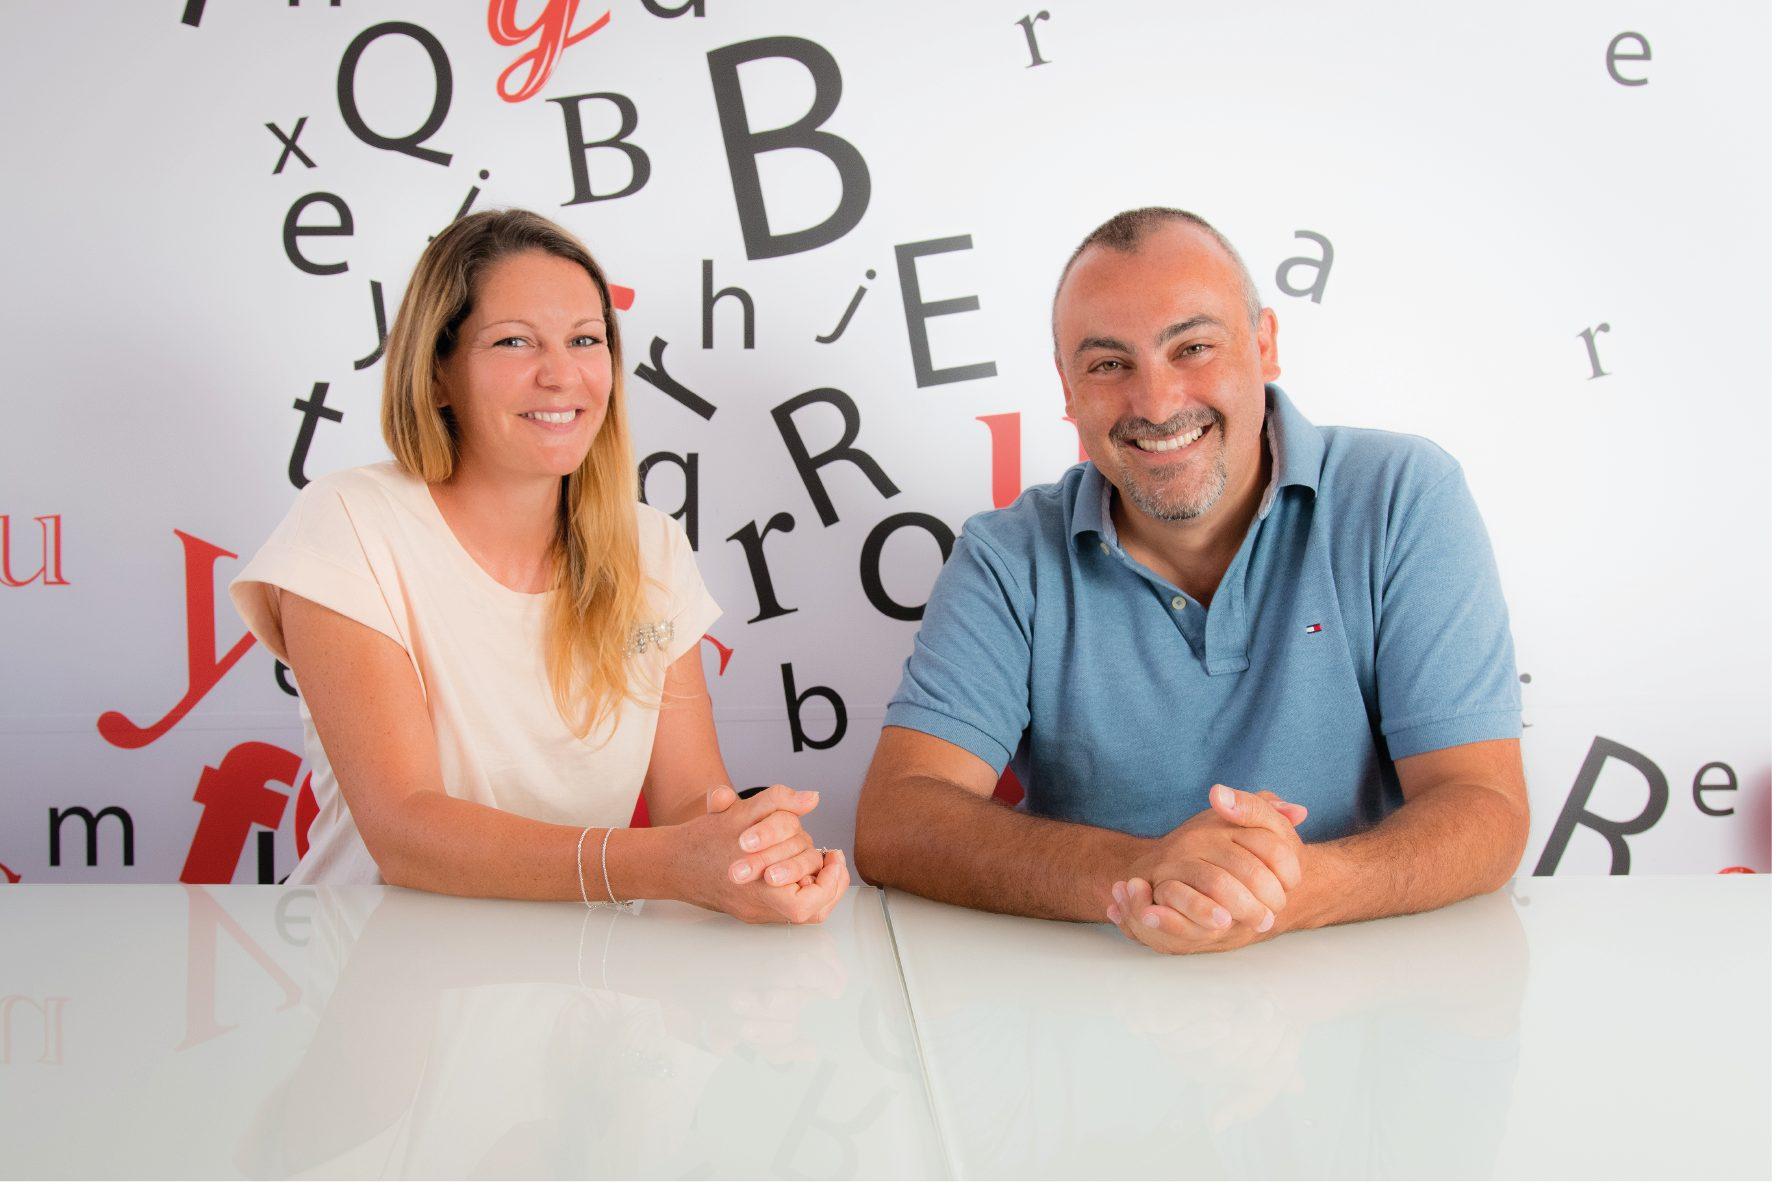 Isabelle Andrieu (left) and Marco Trombetti, co-founders of Translated